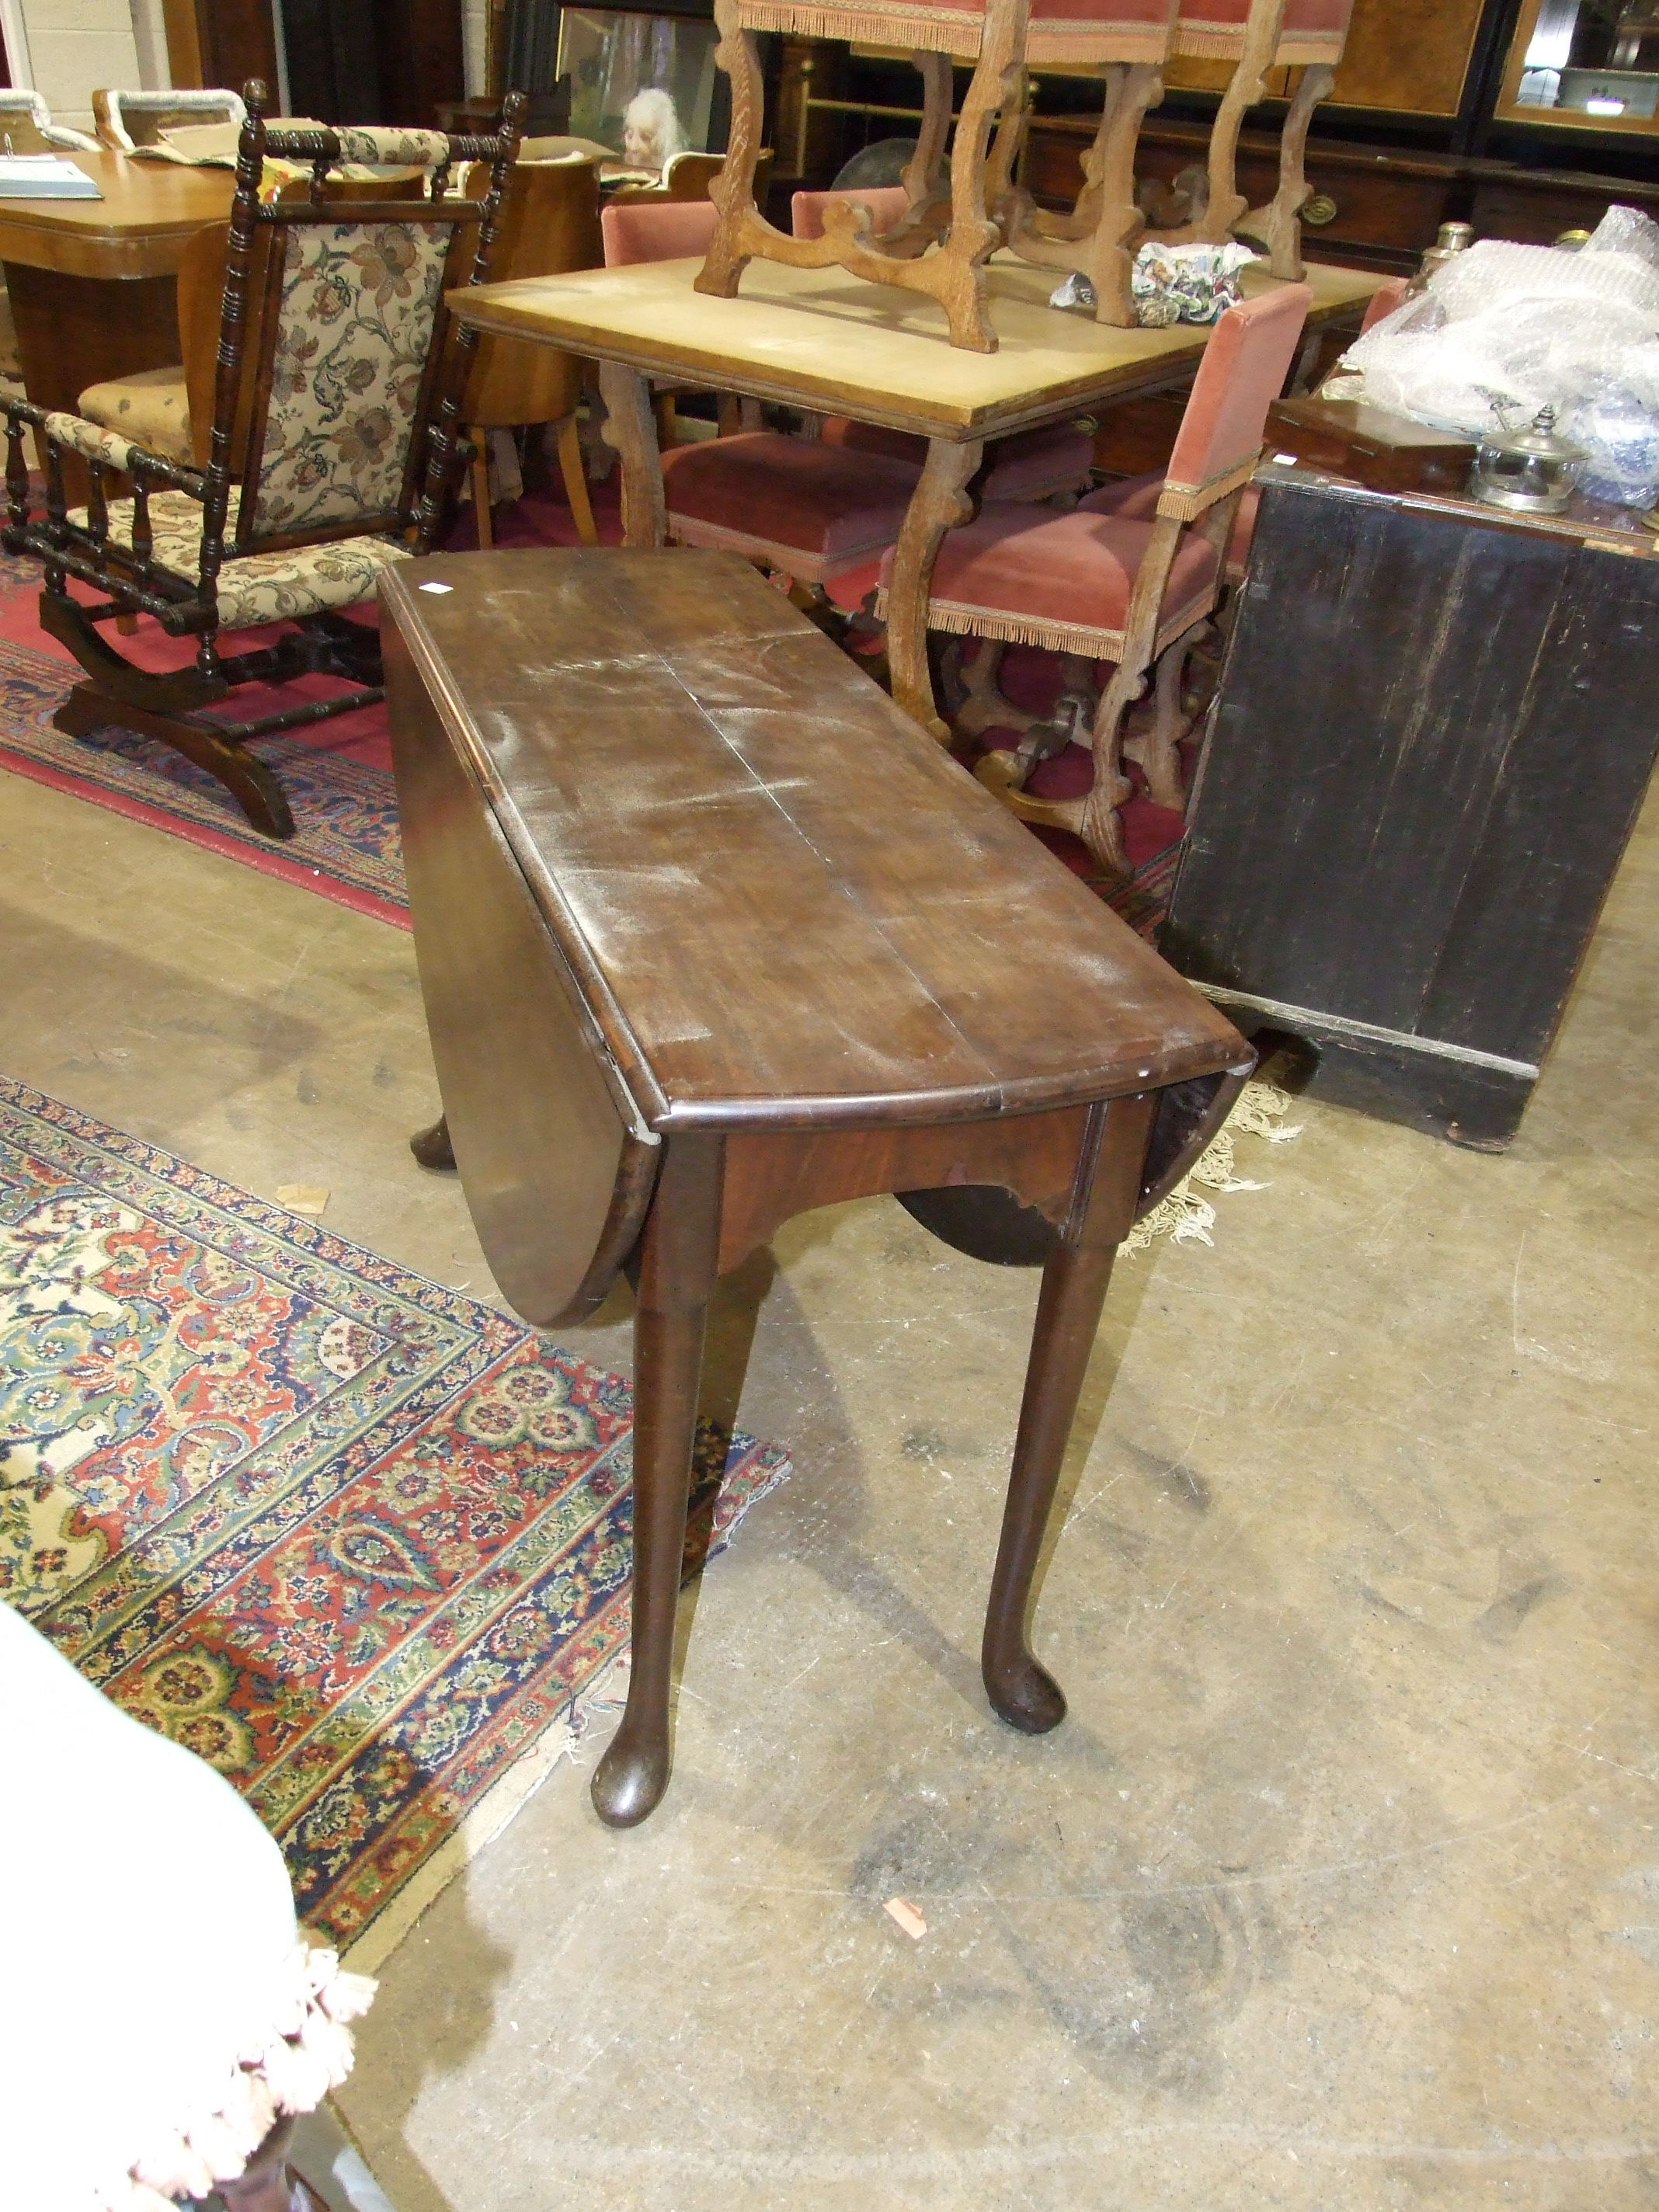 Lot 16 - An 18th century Cuban mahogany oval drop-leaf dining table on turned legs with pad feet, 17 x